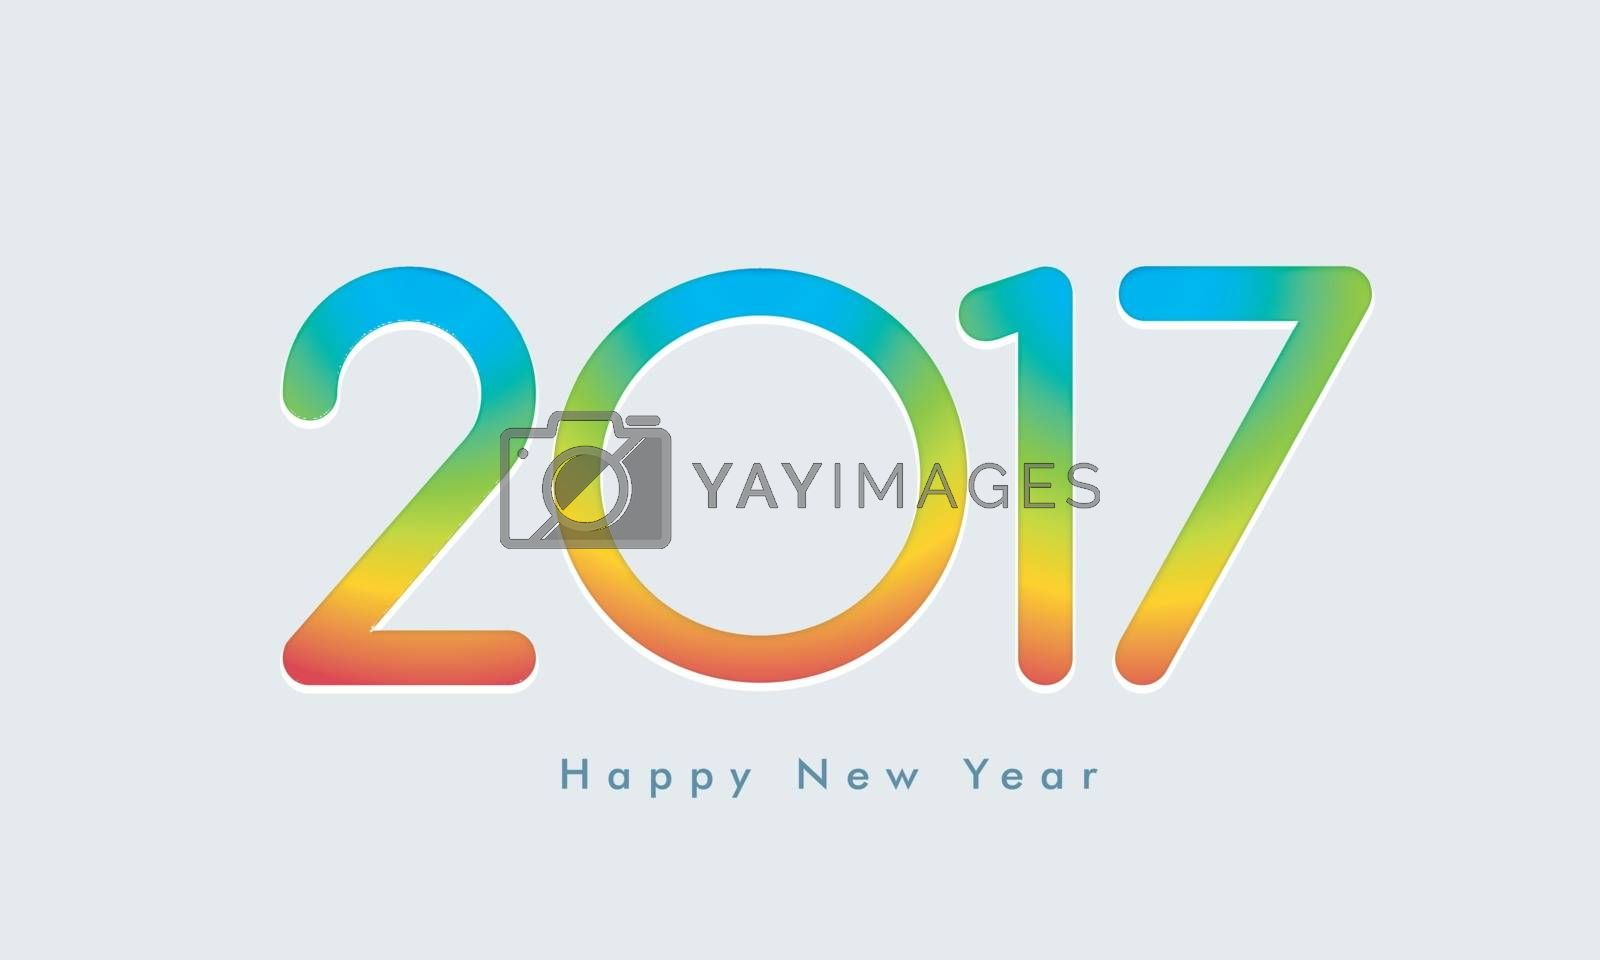 Greeting card with colorful glossy Text 2017 for Happy New Year Celebration.